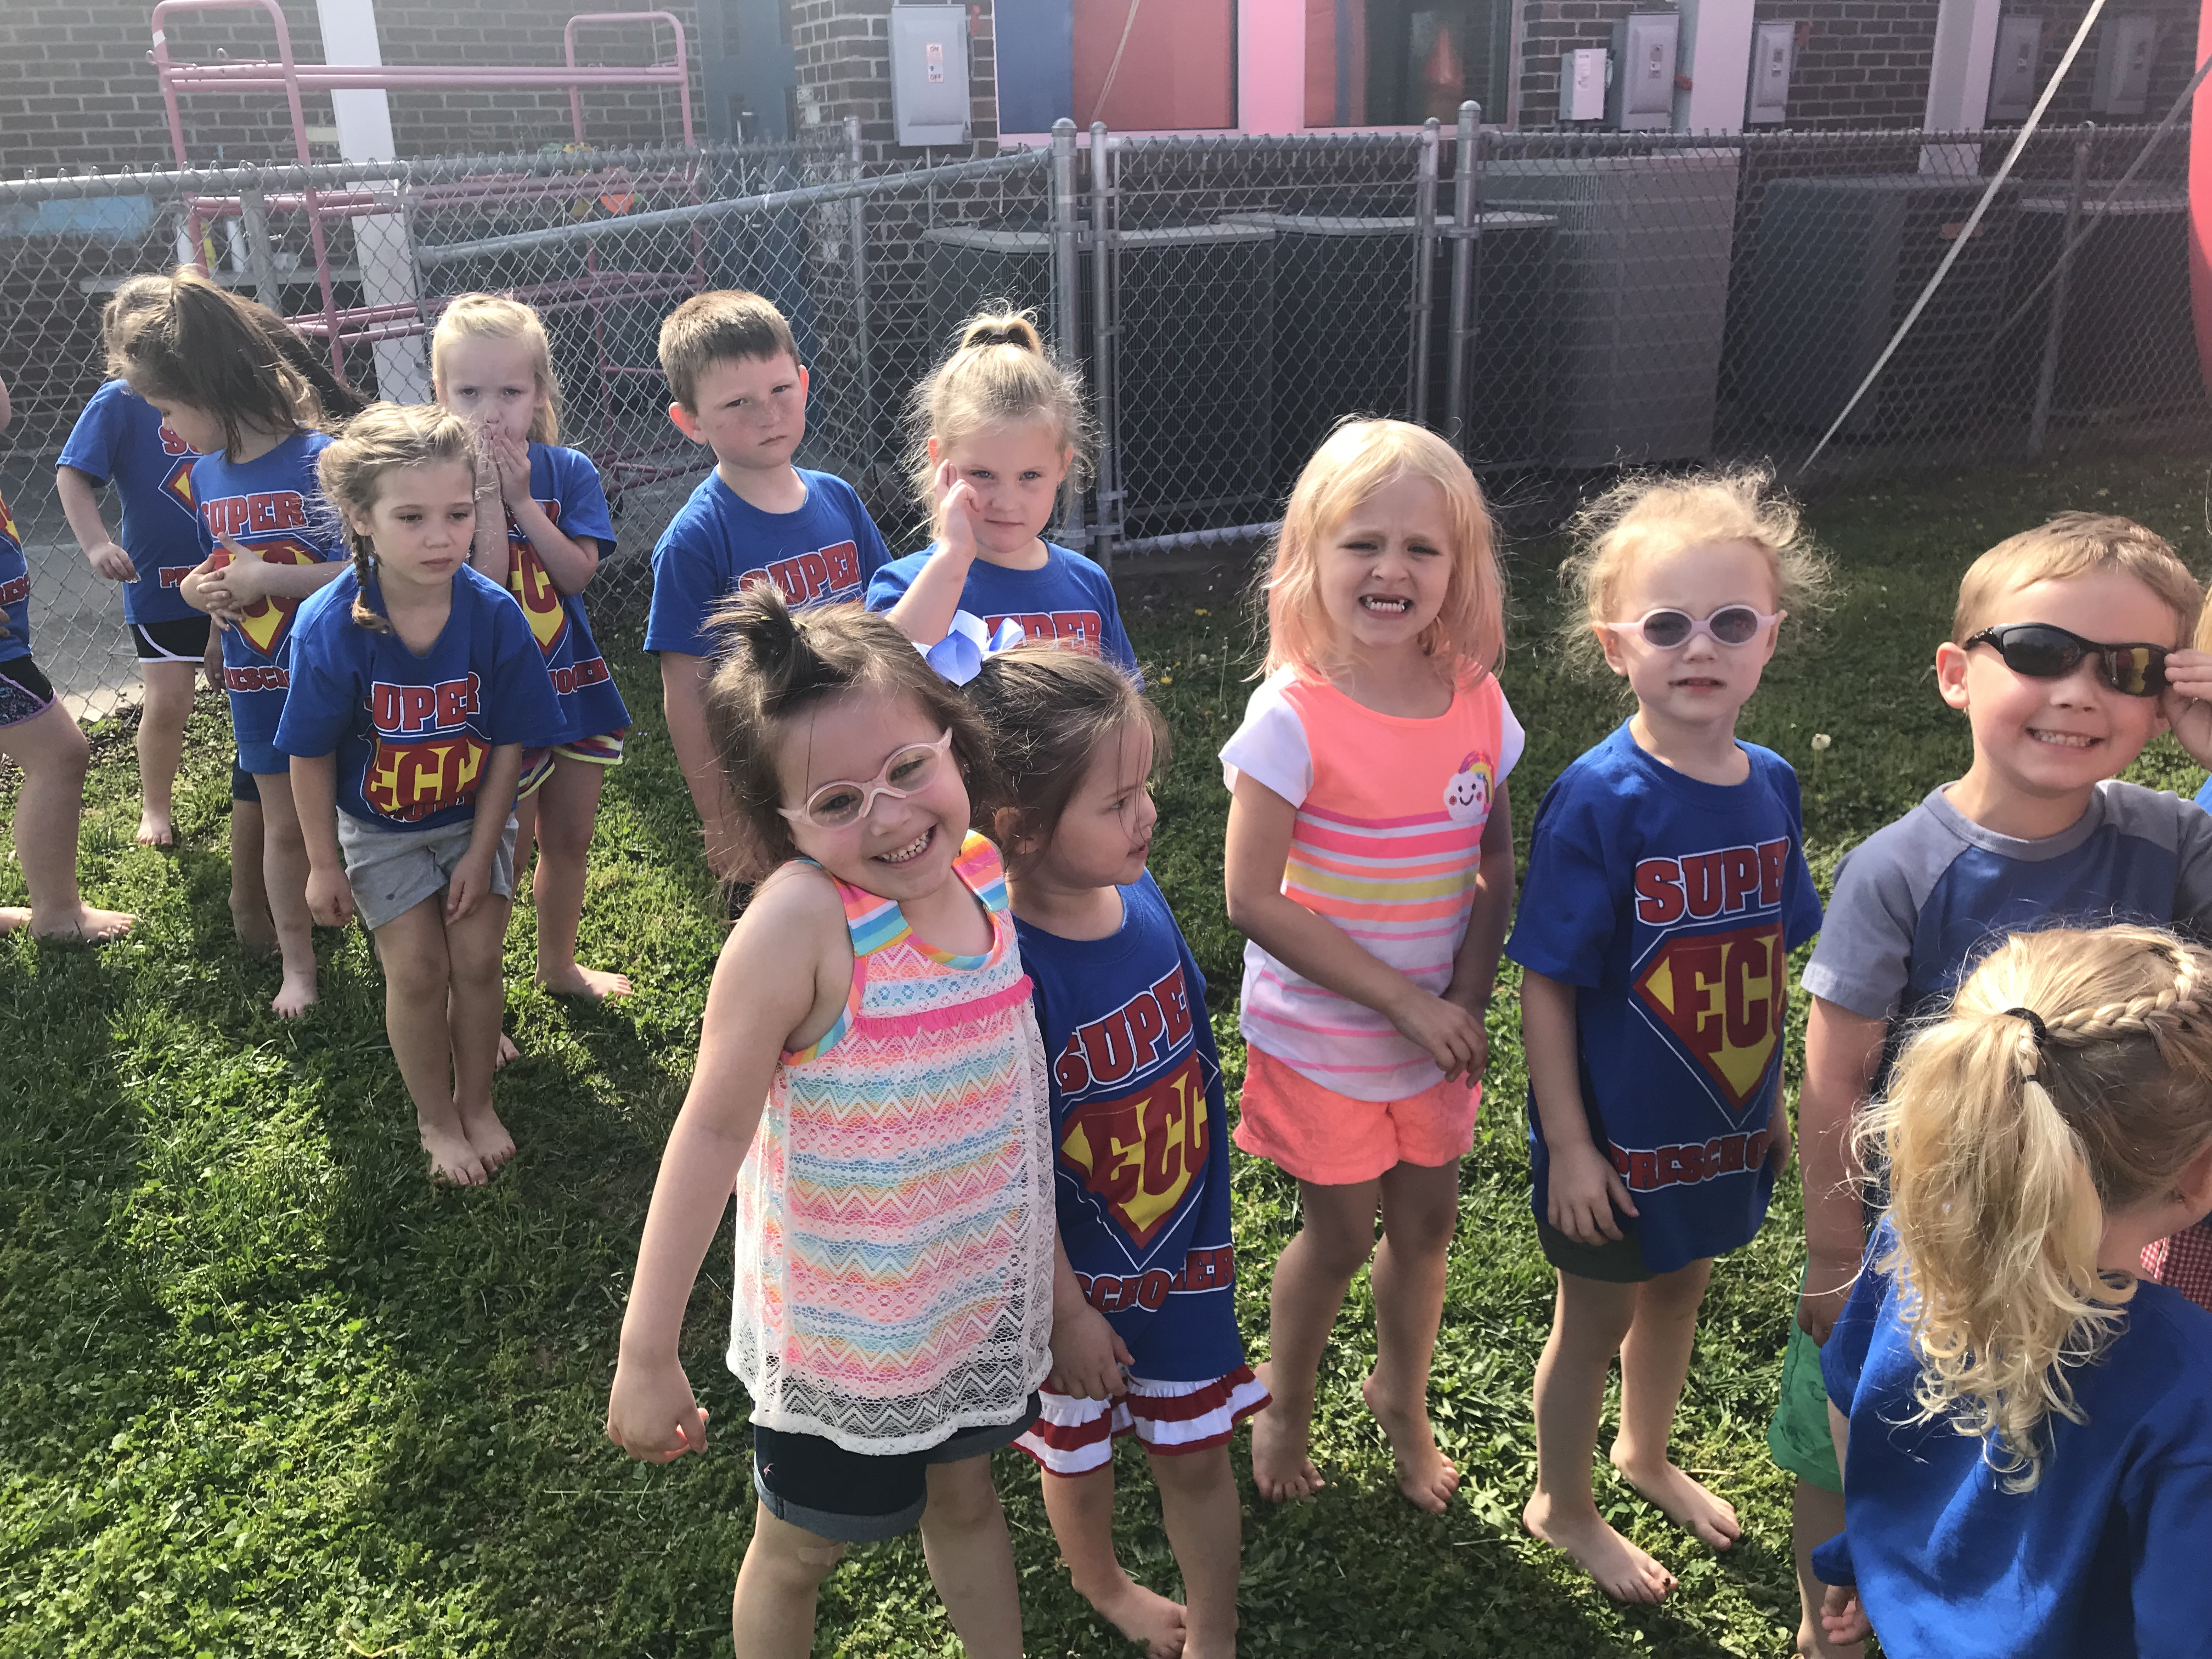 The preschool students at the Clinton County Early Childhood Center celebrated their last day of school on April 26th with a FUN DAY!